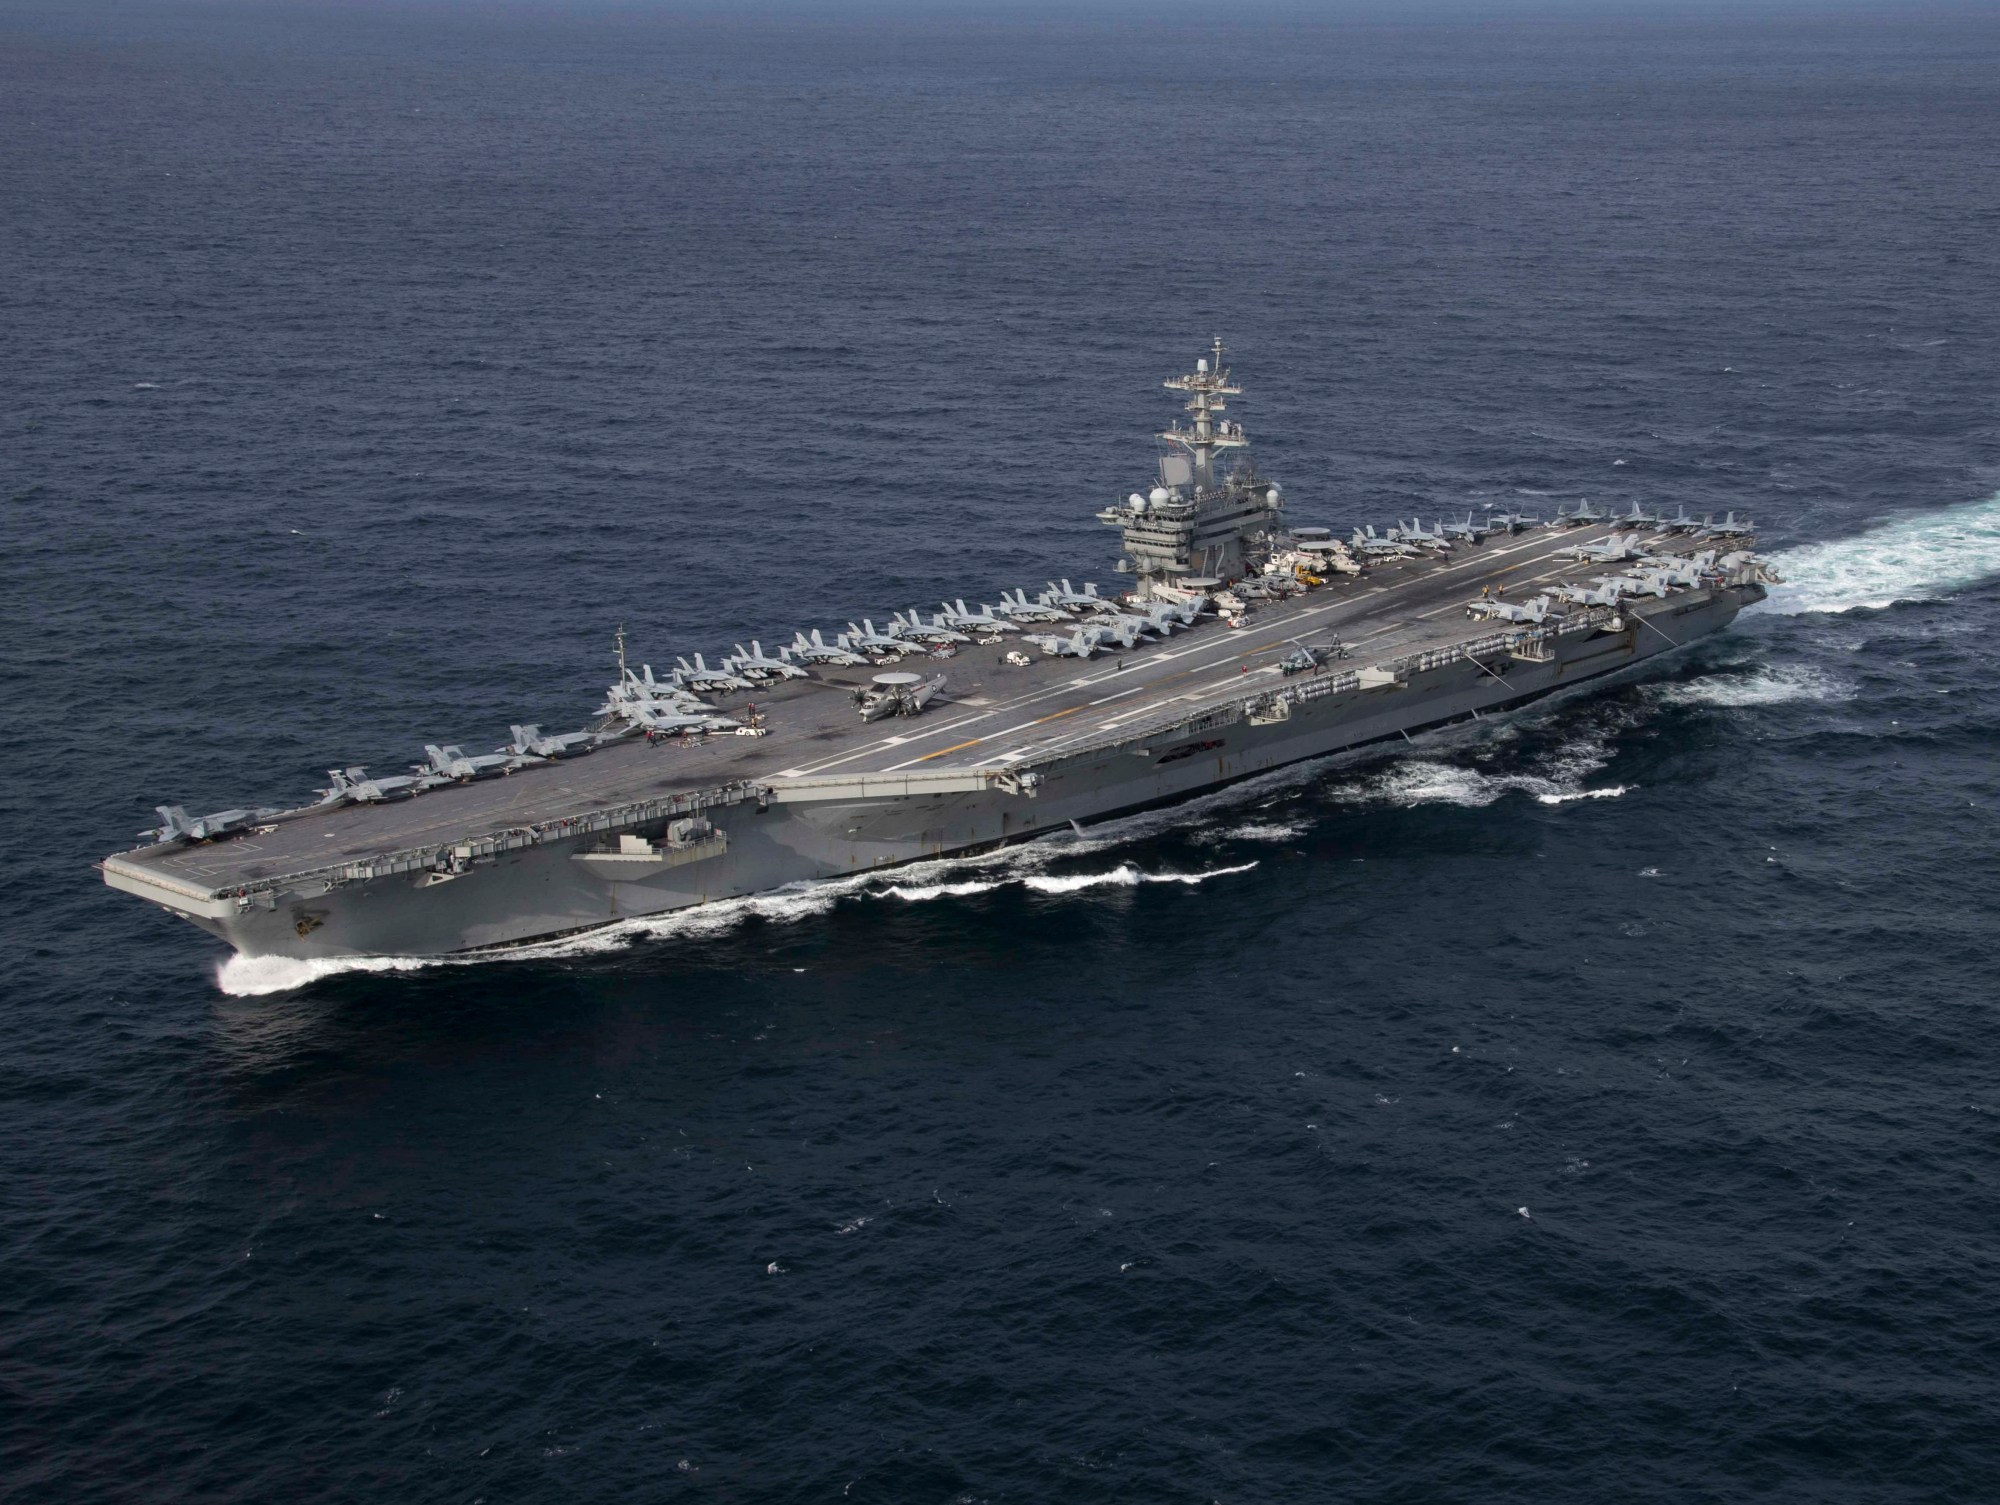 hight resolution of USS Abraham Lincoln (CVN-72) - Wikipedia